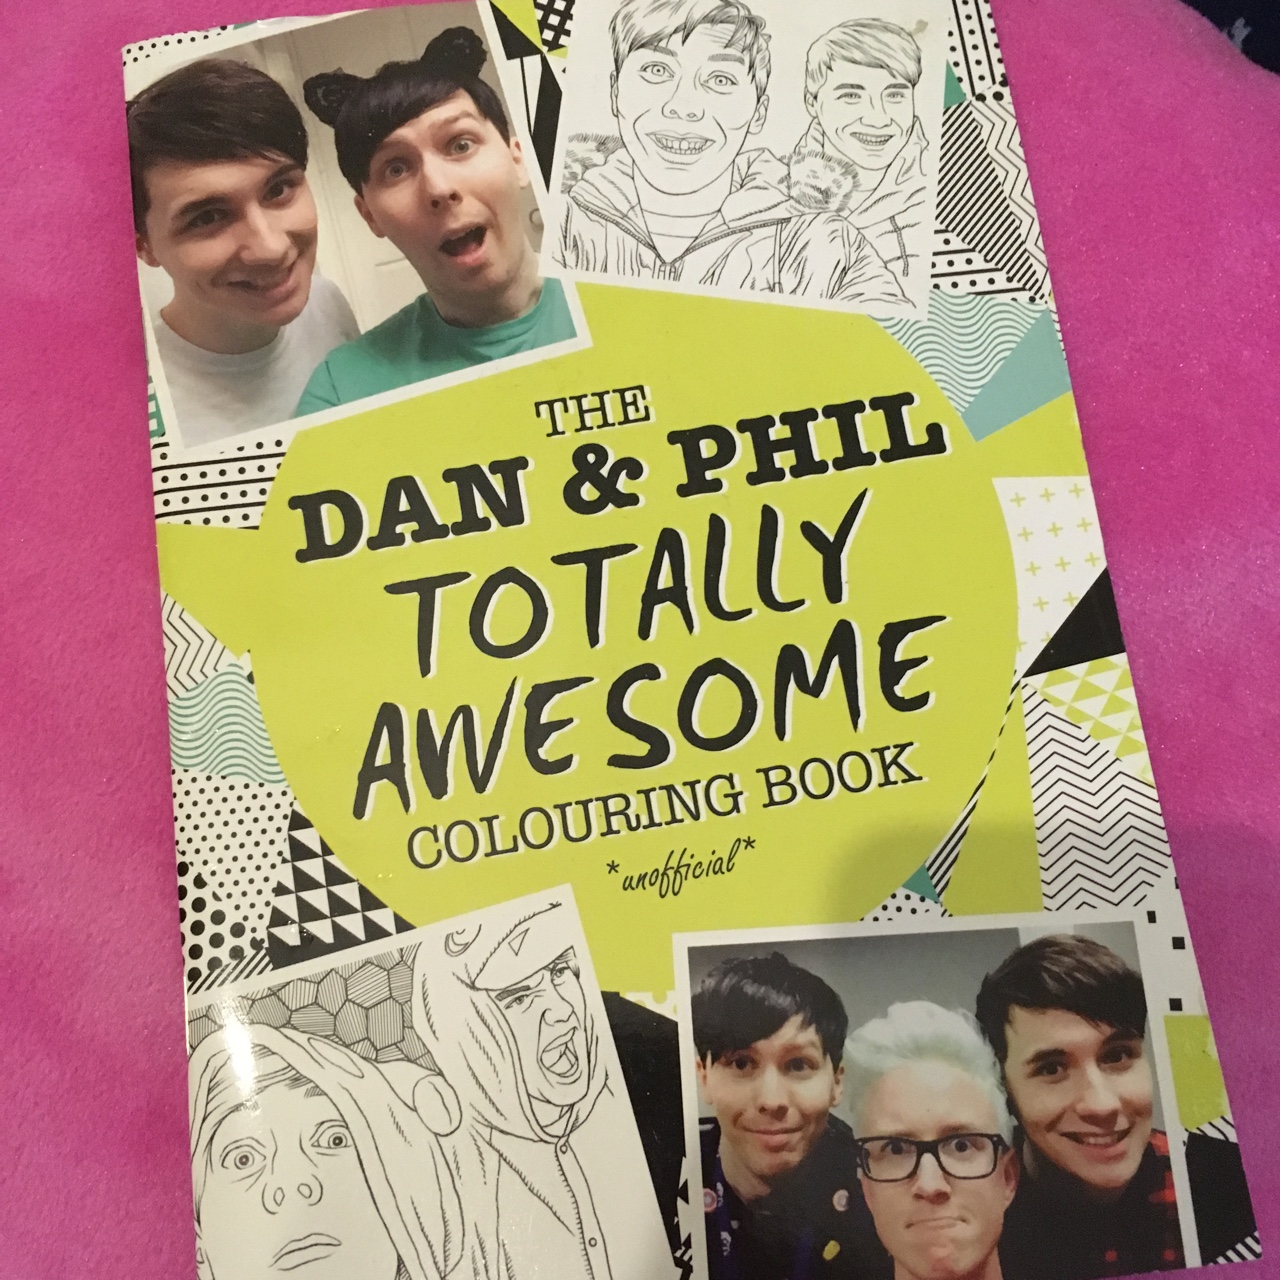 Dan and Phil colouring book £3 with any other... - Depop